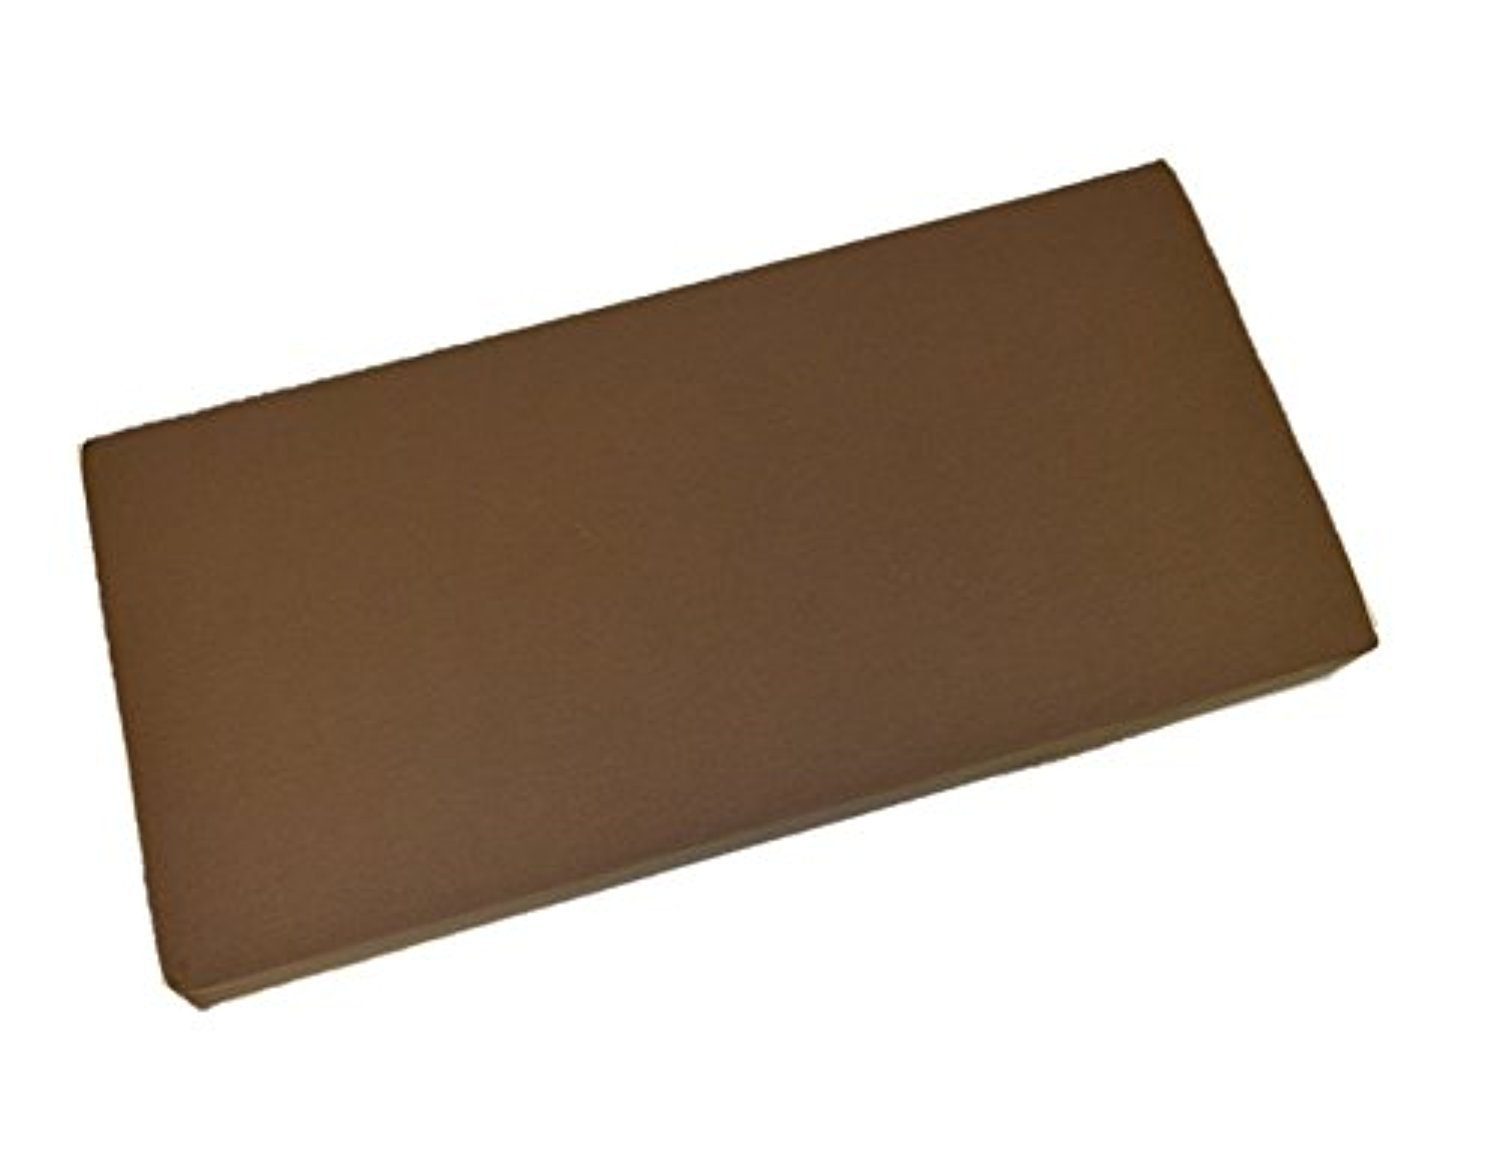 Solid Chocolate Brown 3'' Thick Foam Swing/Bench/Glider Cushion with Ties and Zipper - Indoor/Outdoor Fabric - Choose Size